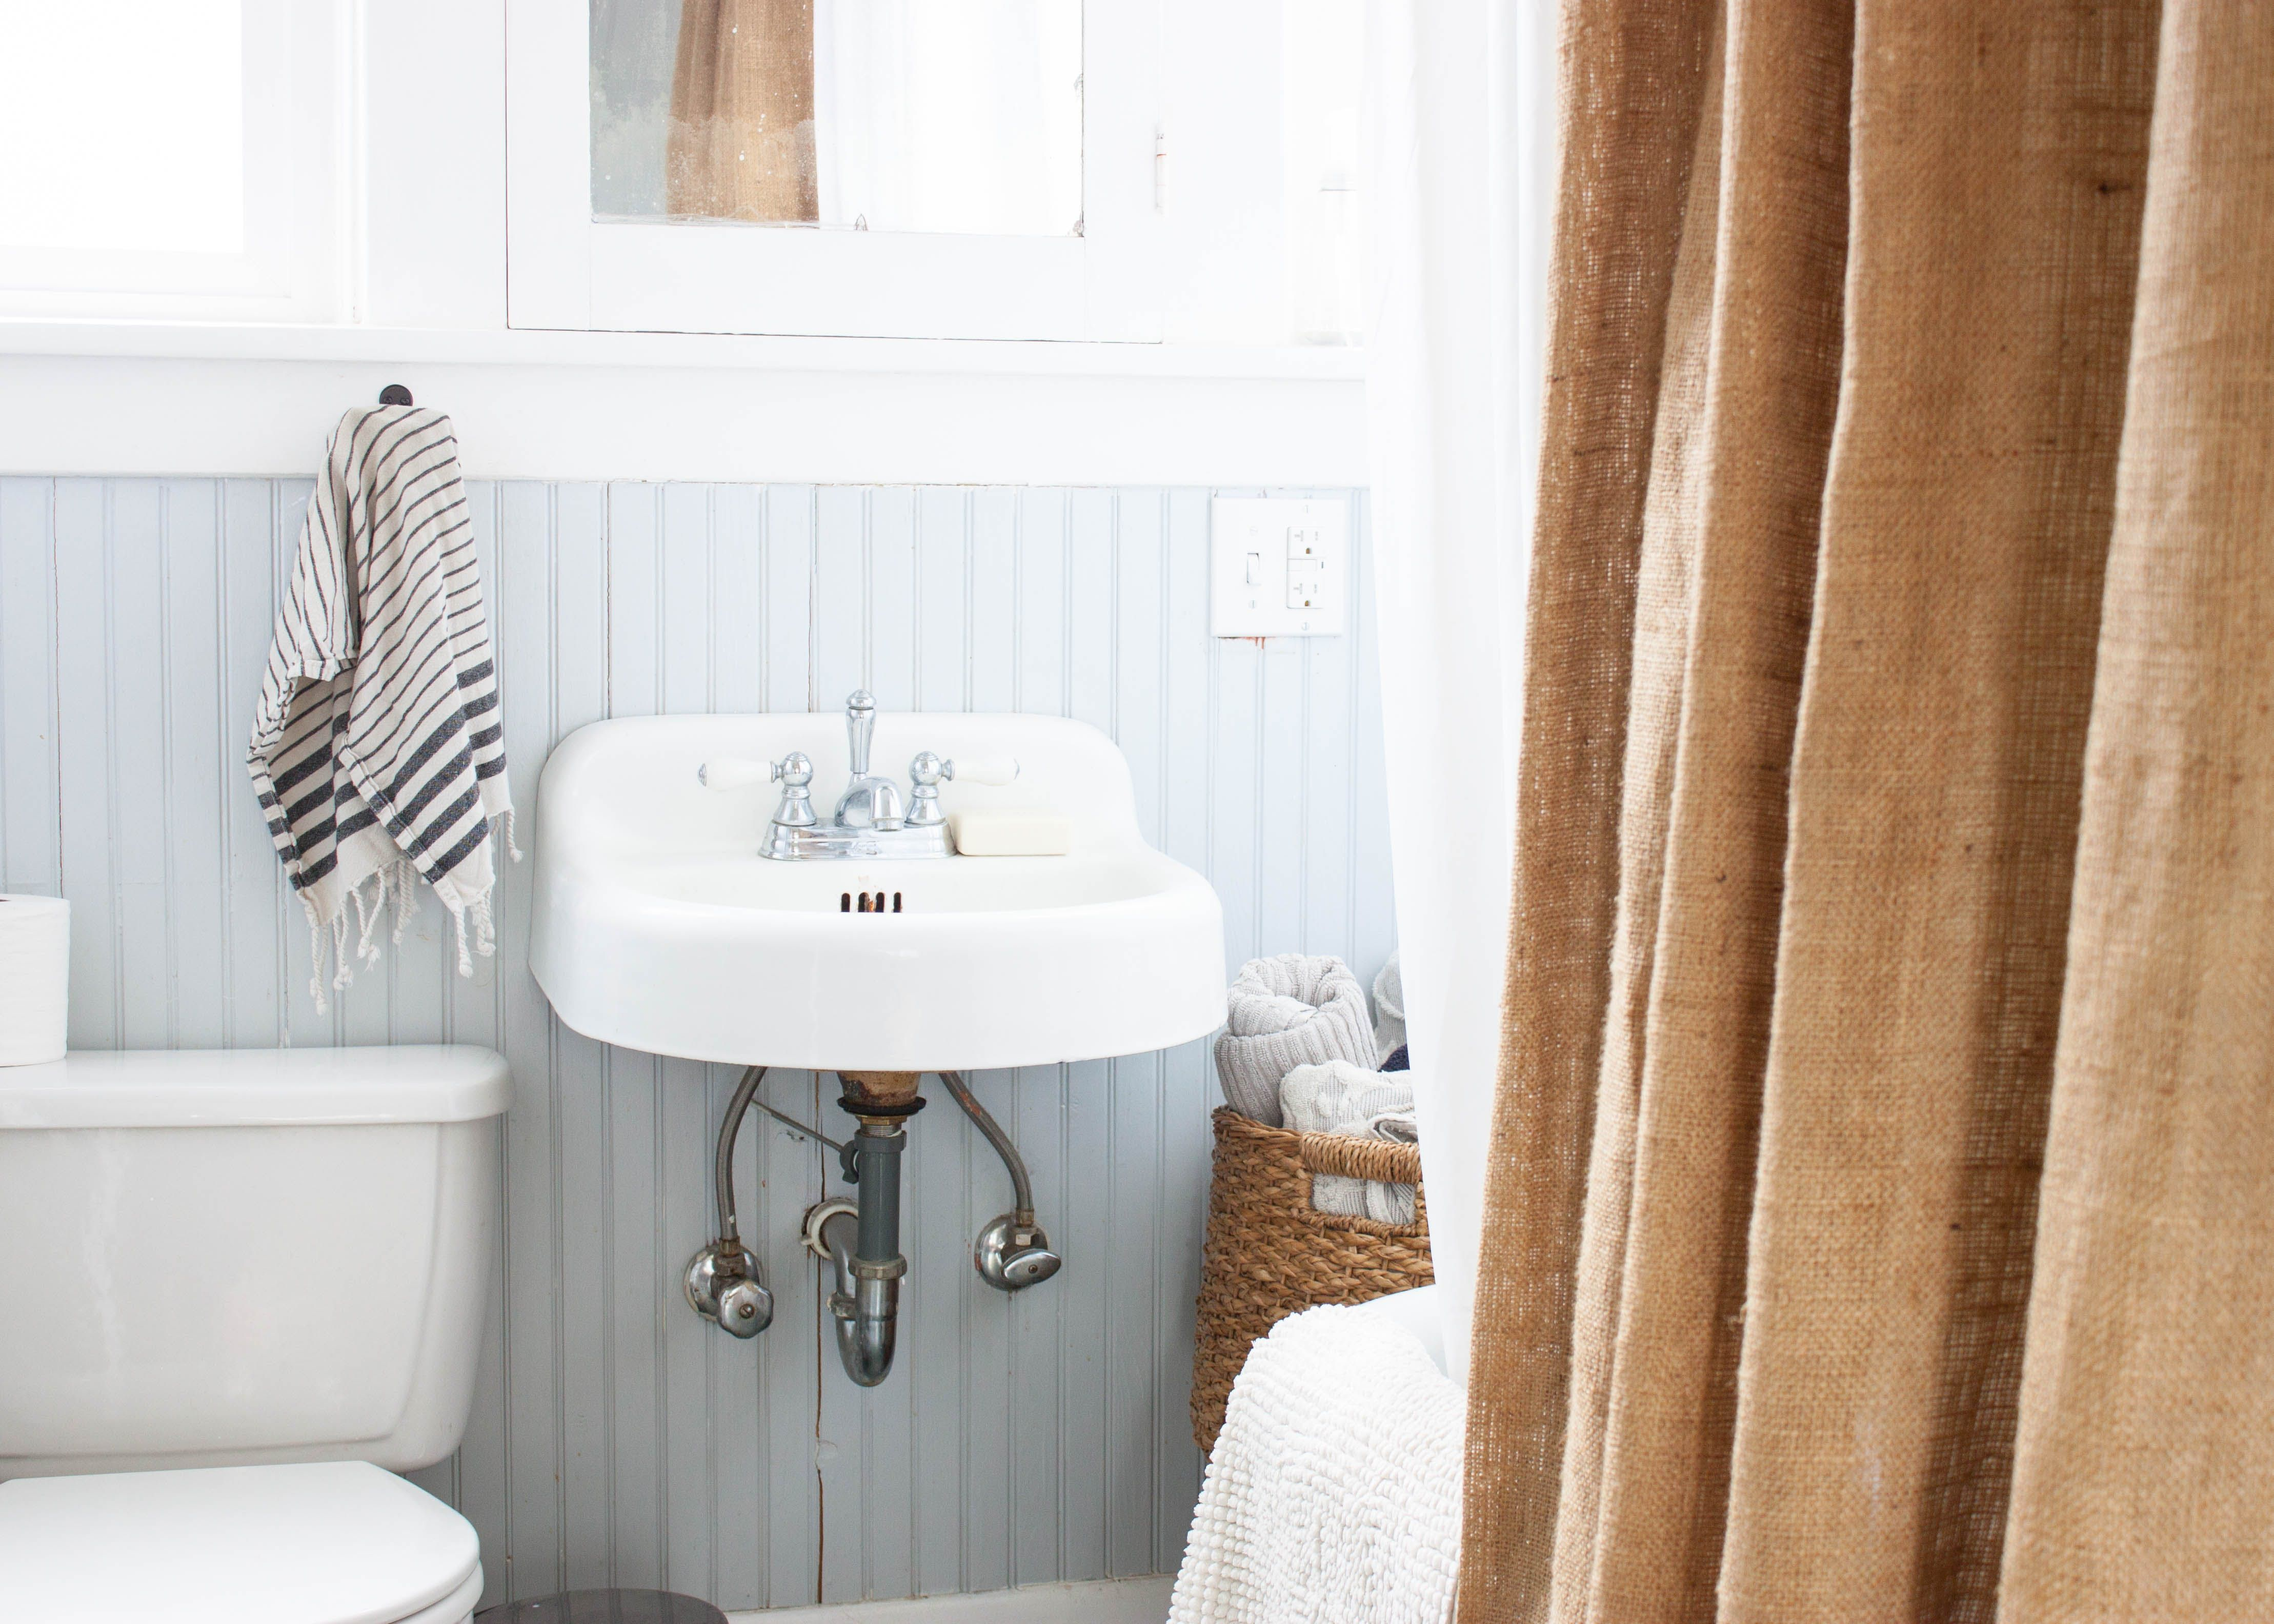 Burlap bathroom ideas - Burlap Bathroom Curtain